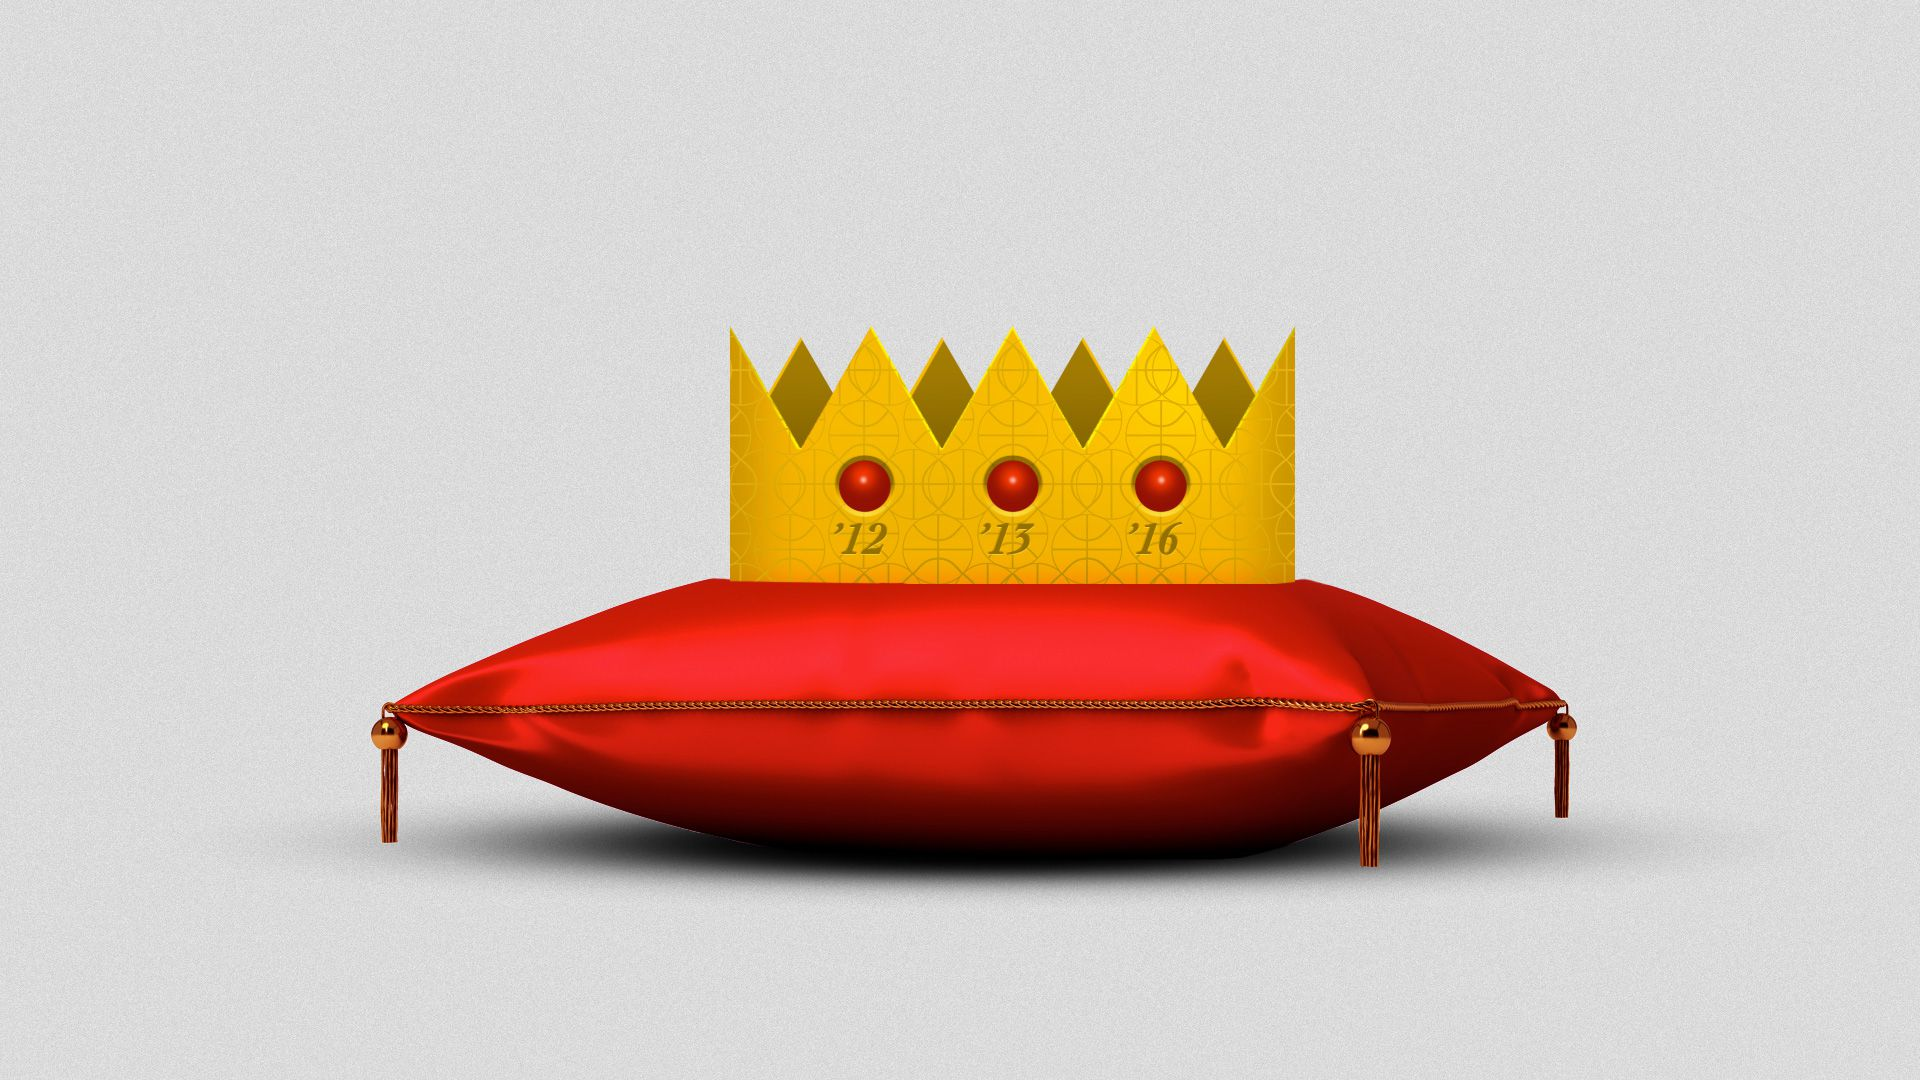 LeBron's crown on a pillow